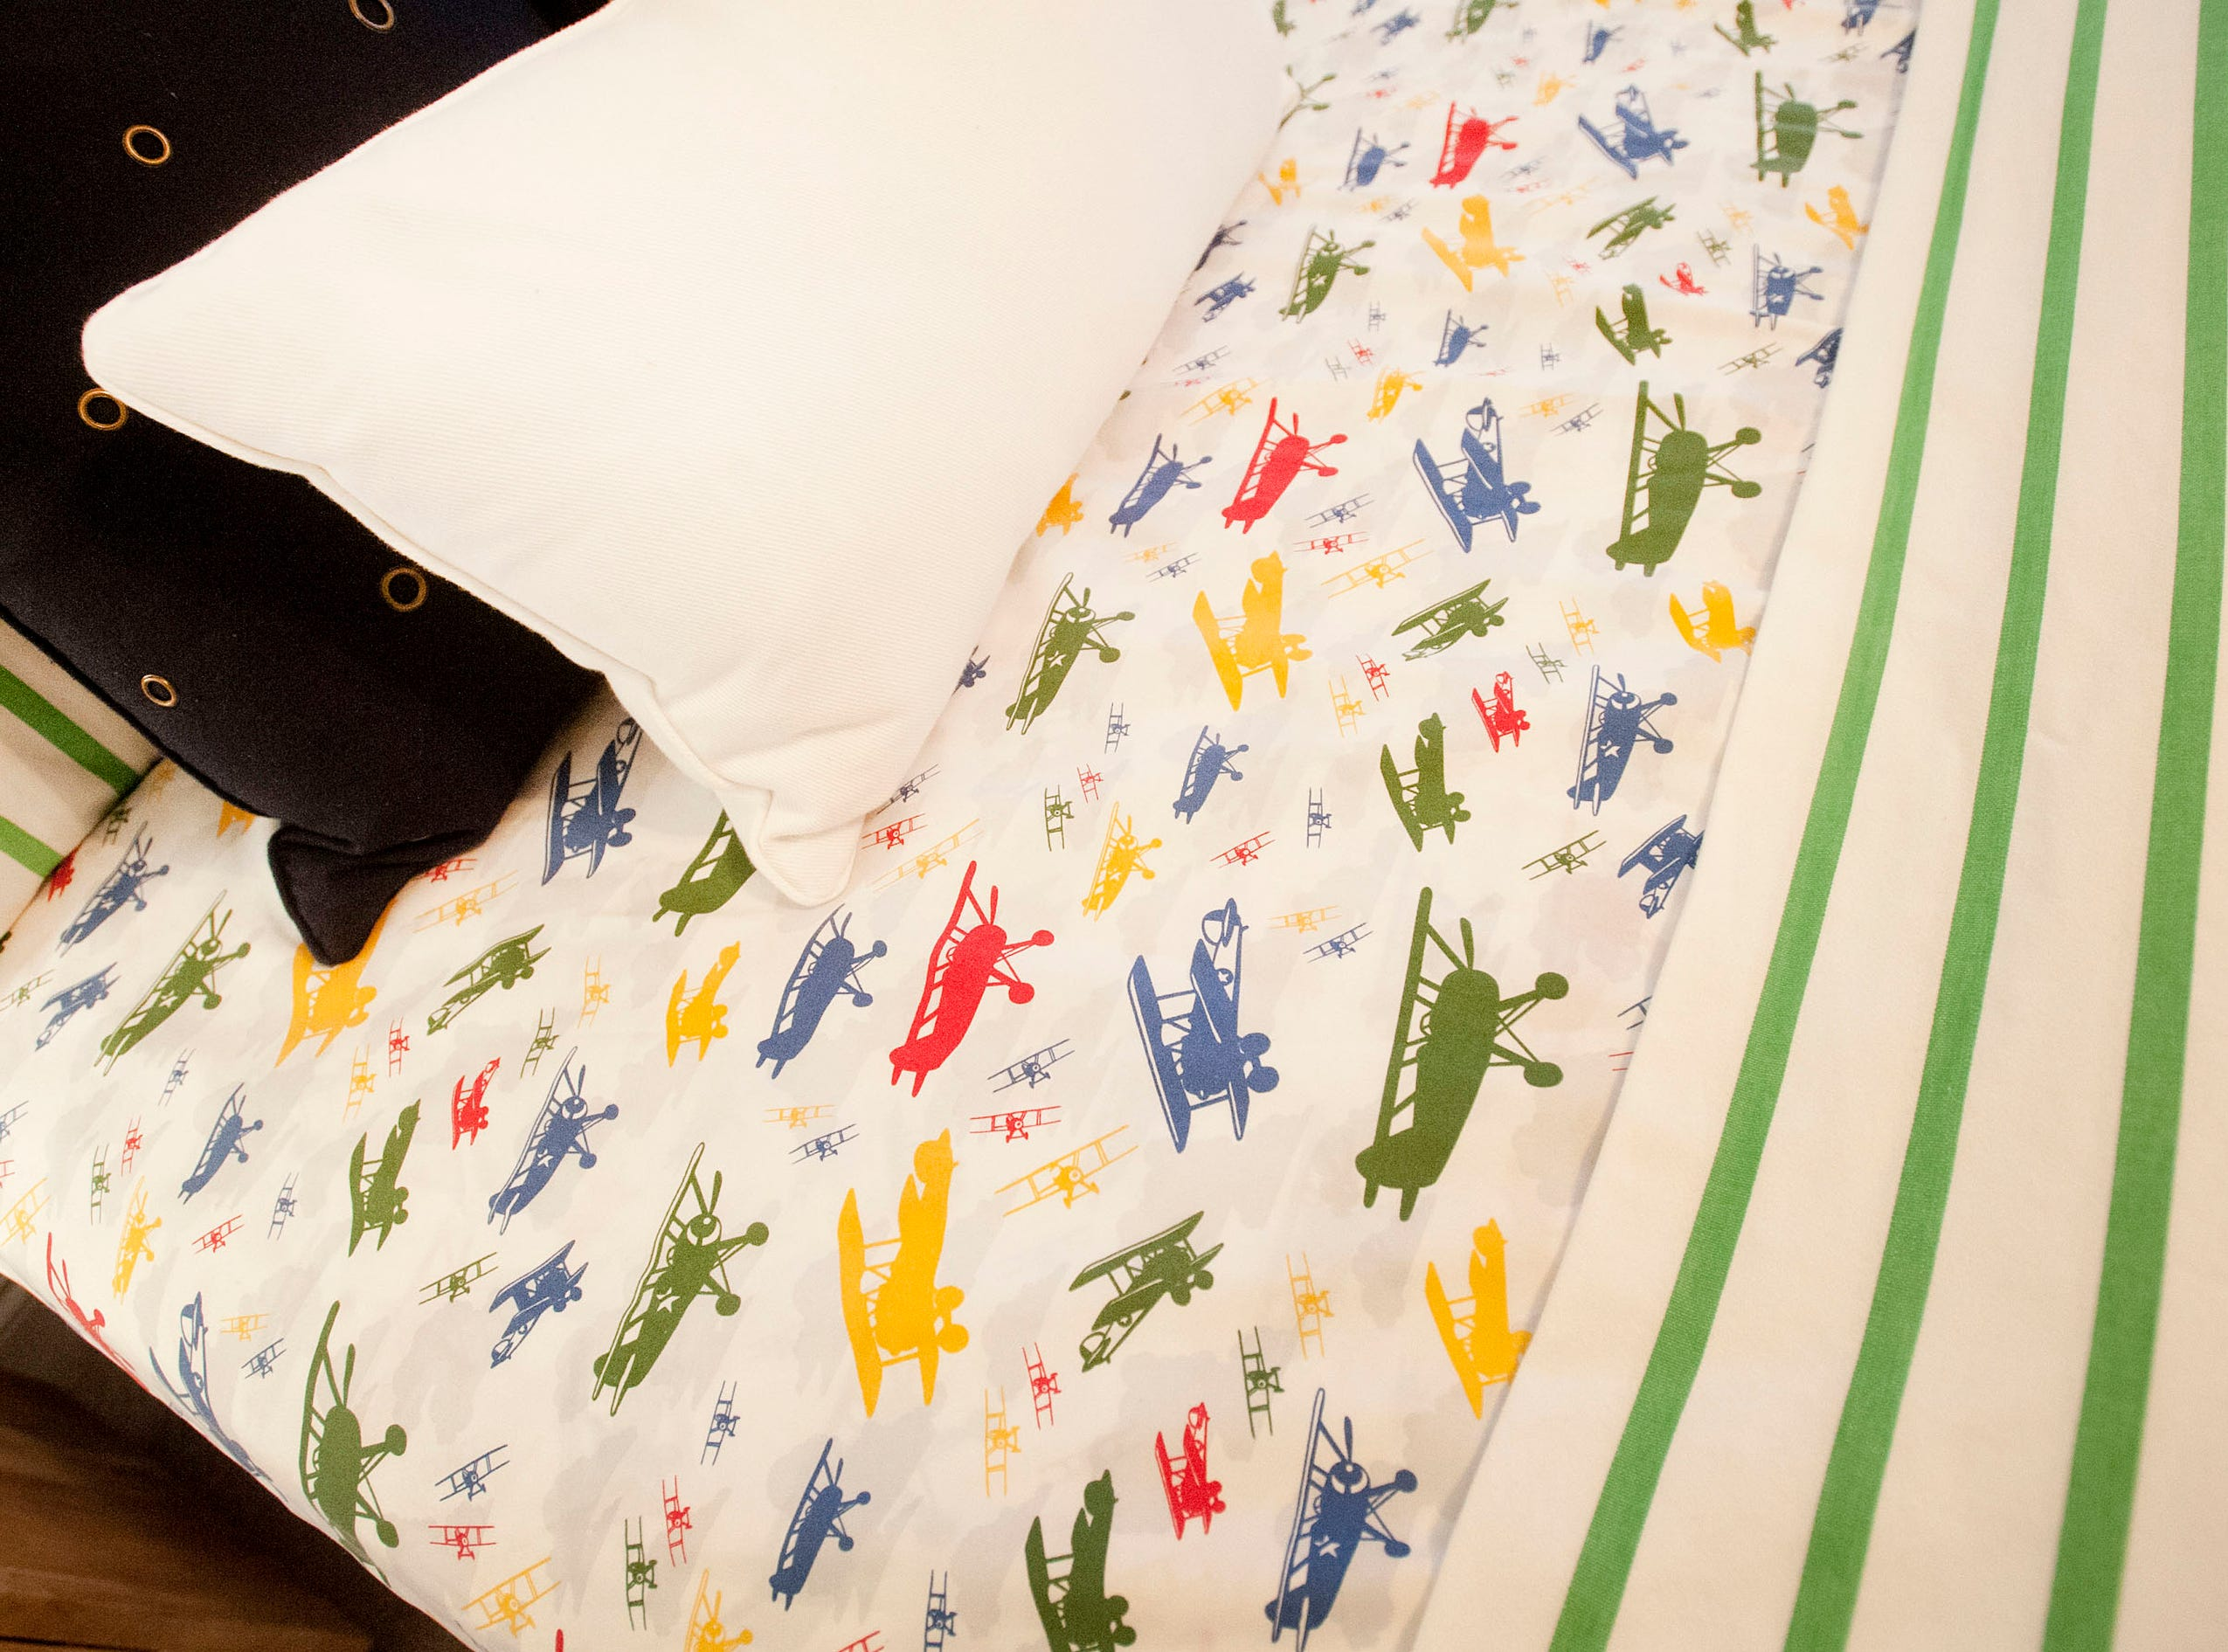 Ellis Hanna's airplane-themed bedroom on the 2nd floor includes airplane sheets.01 March 2019